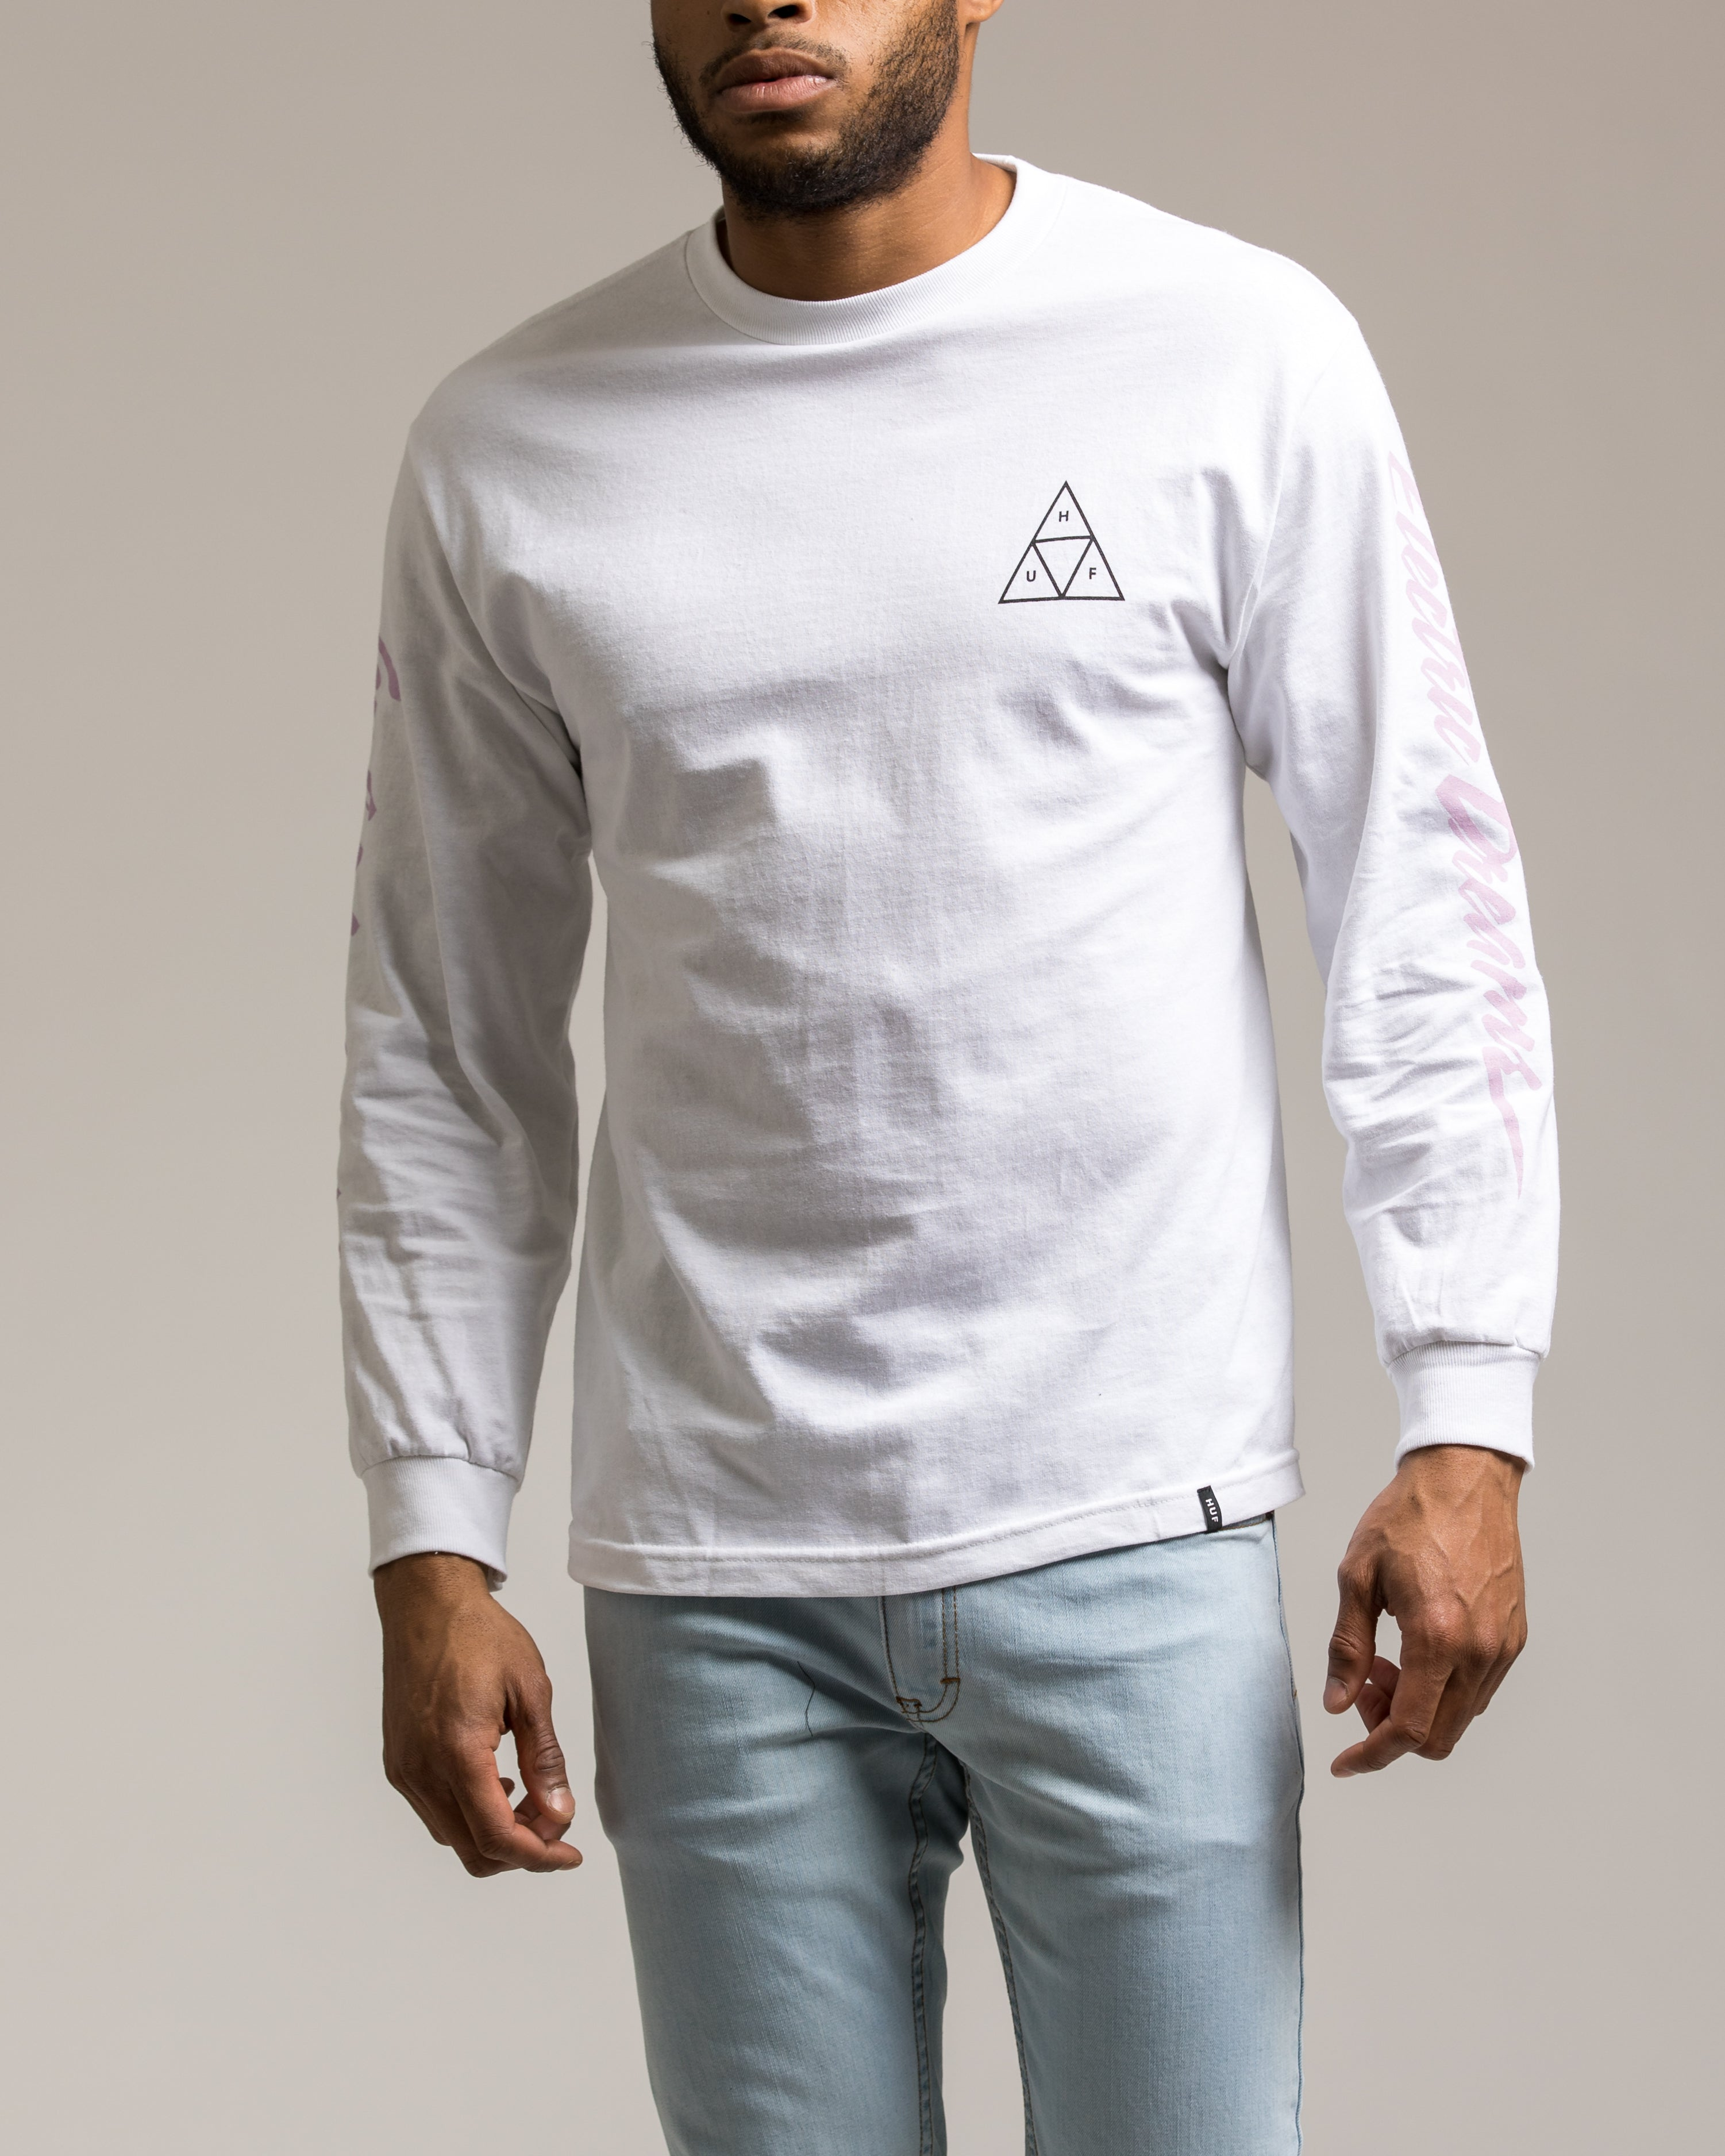 Night Call Triple Triangle Tee